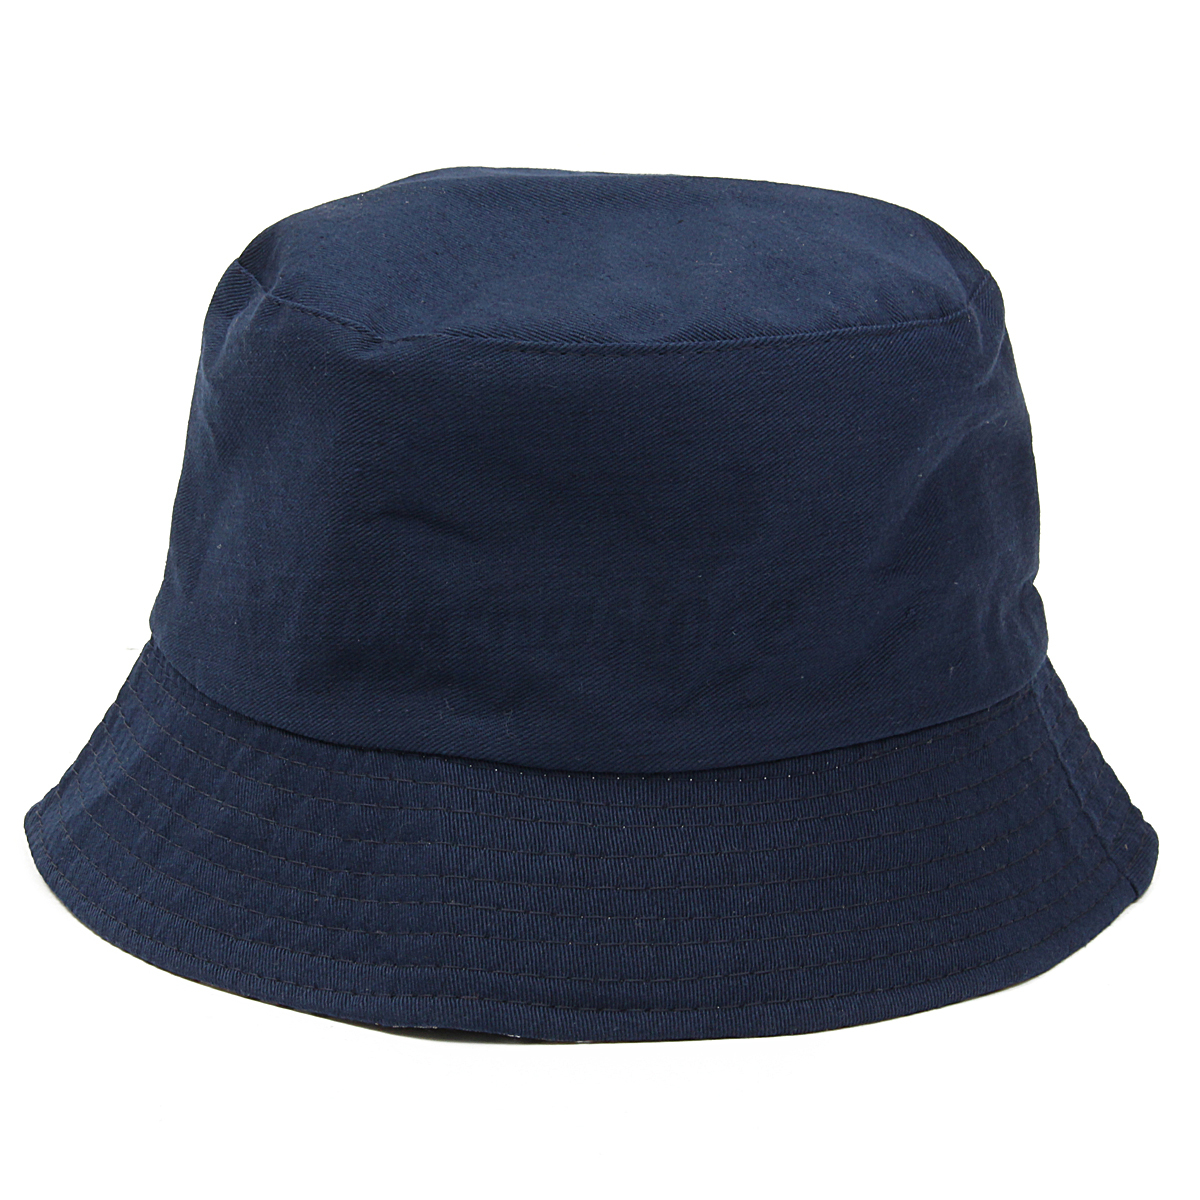 Cotton adults bucket hat summer fishing hunting outdoor for Fishing bucket hats